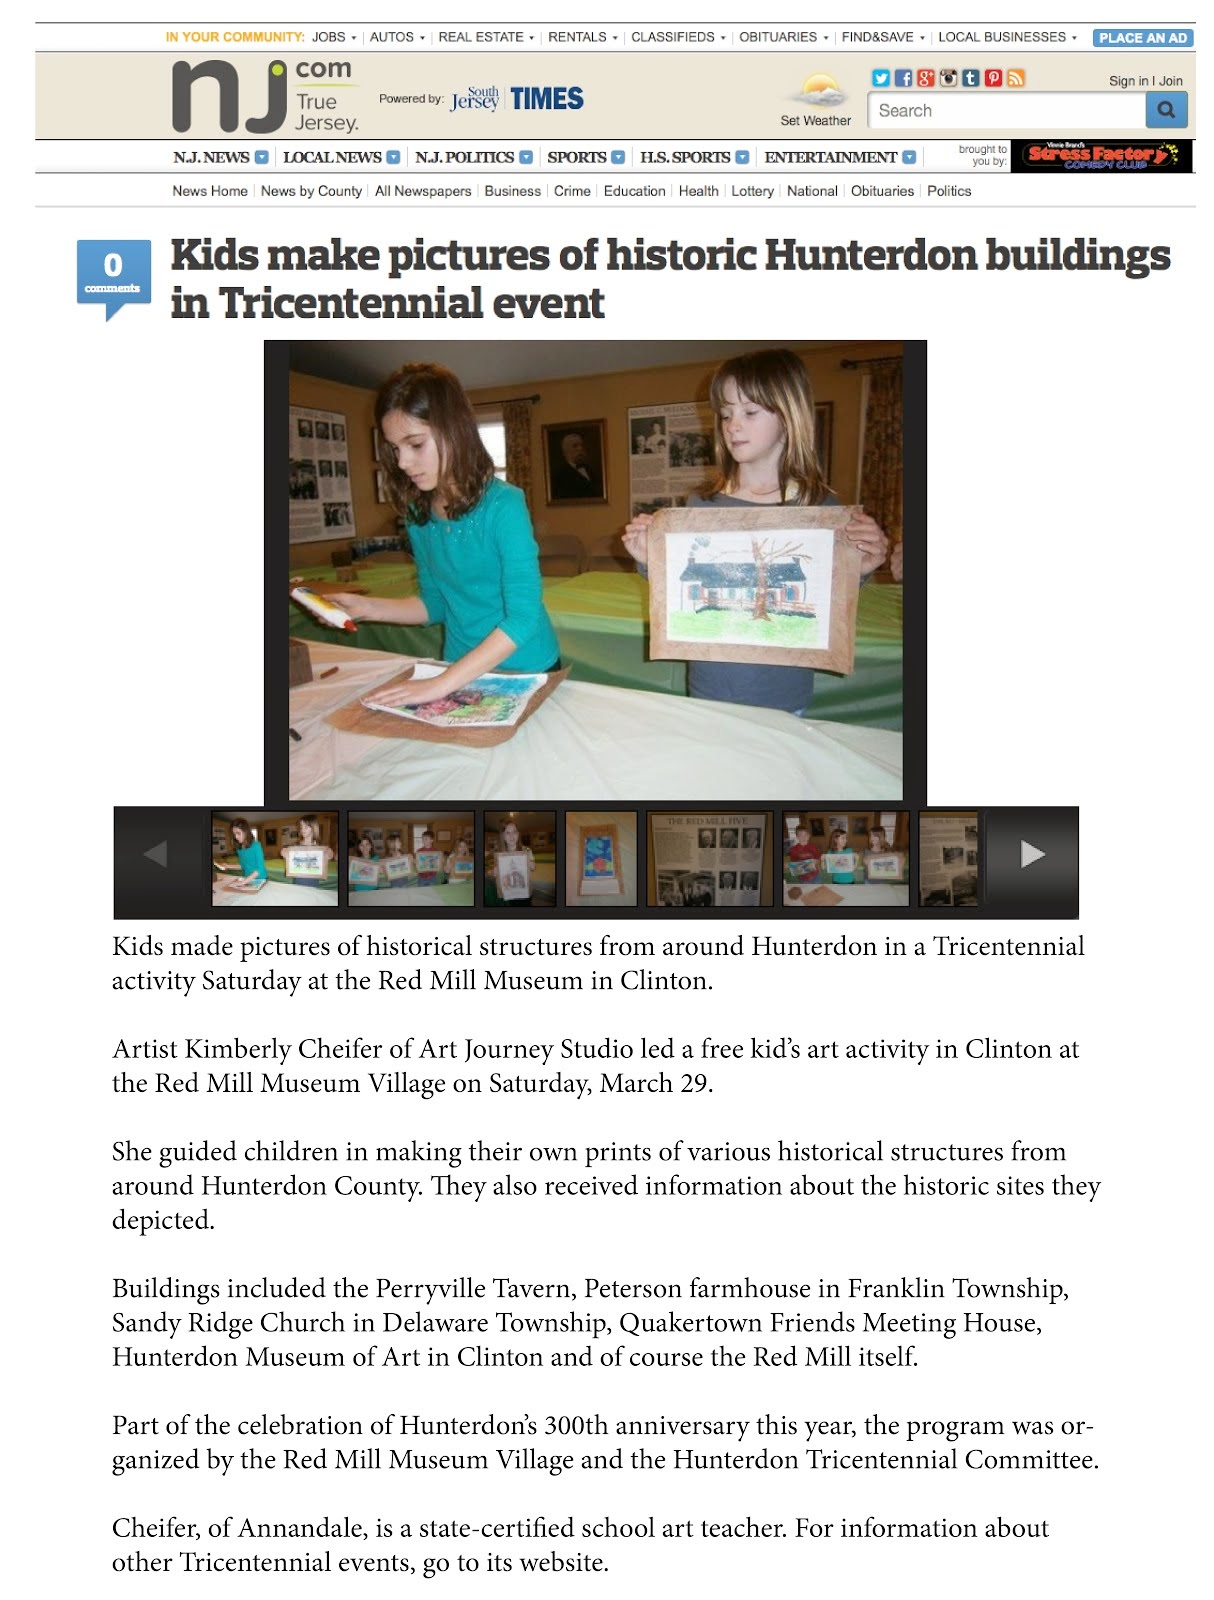 Historic Hunterdon Printmaking